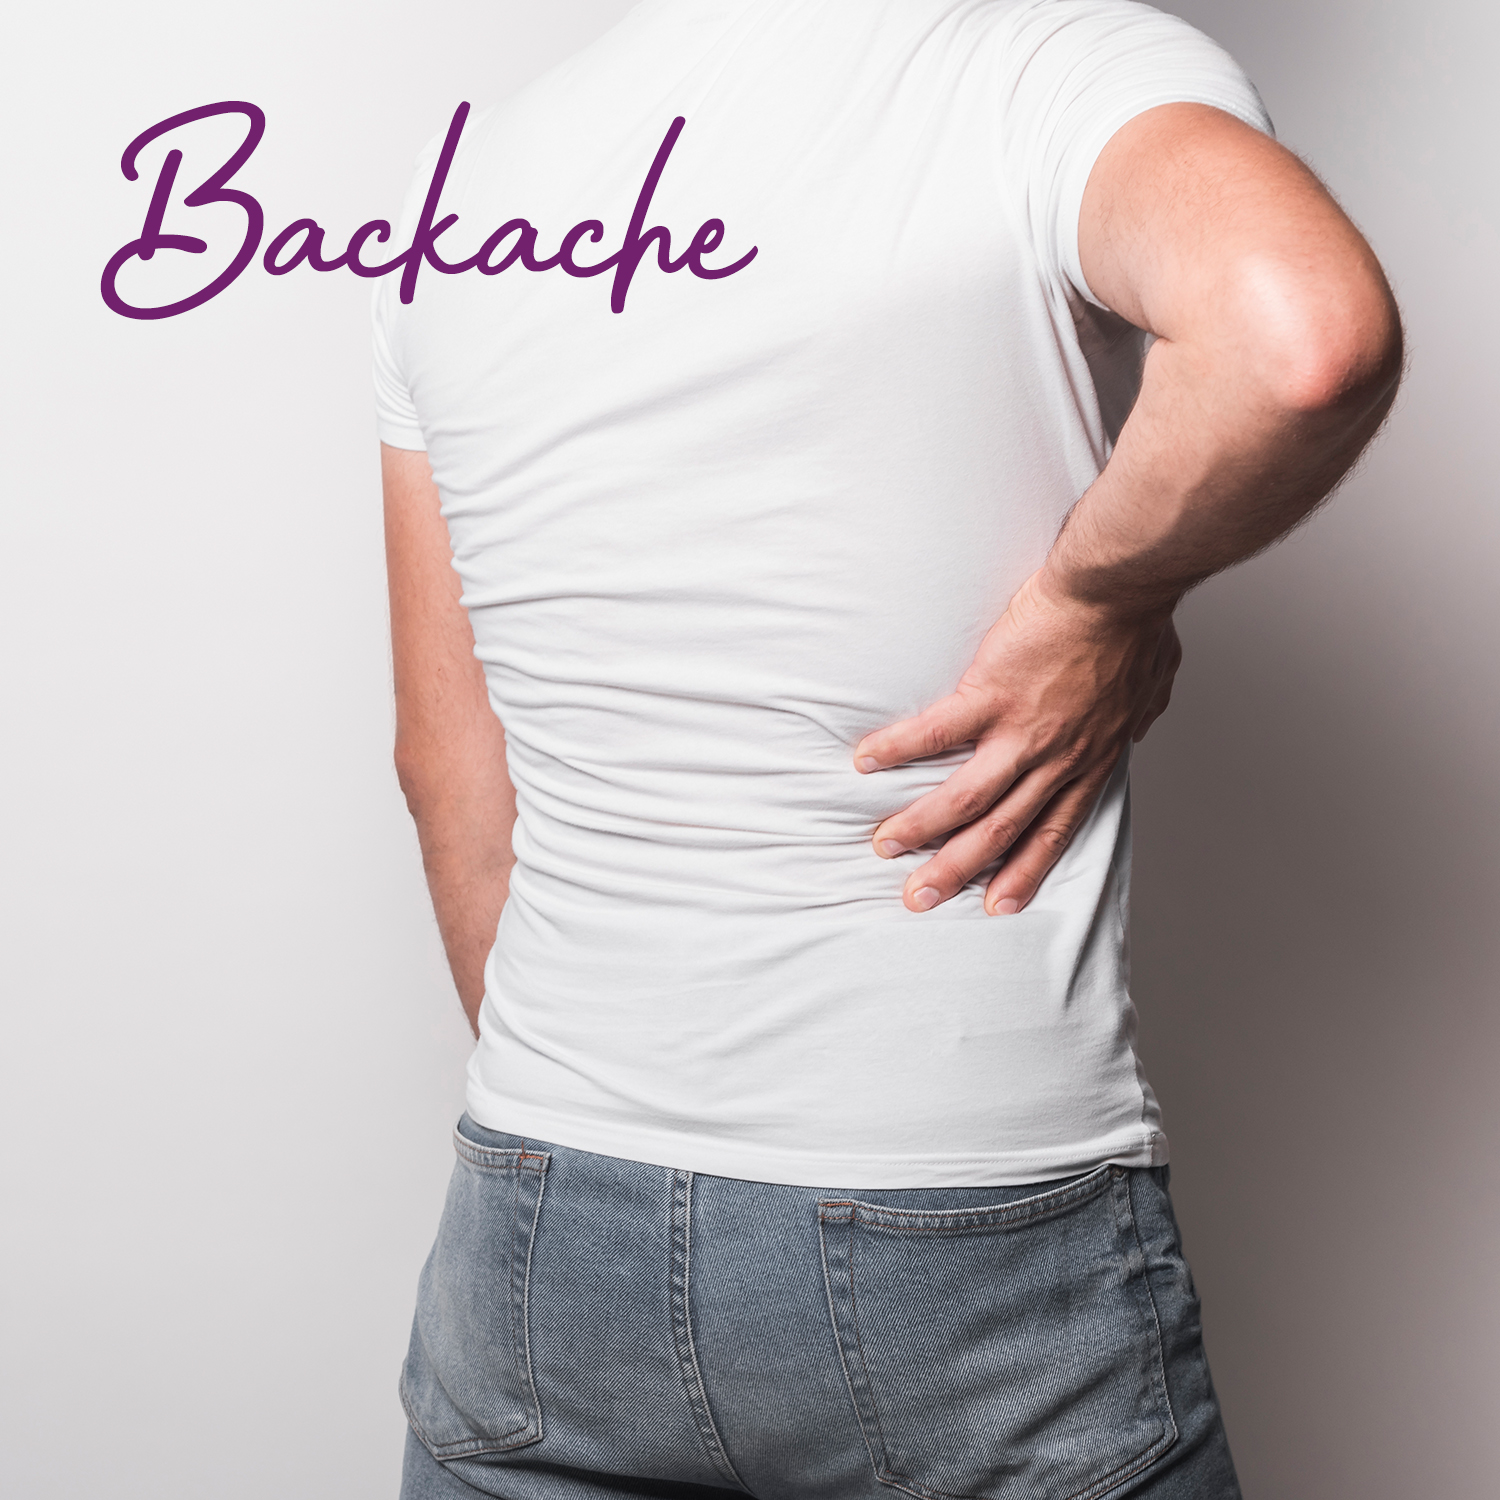 bakcache natural supplements